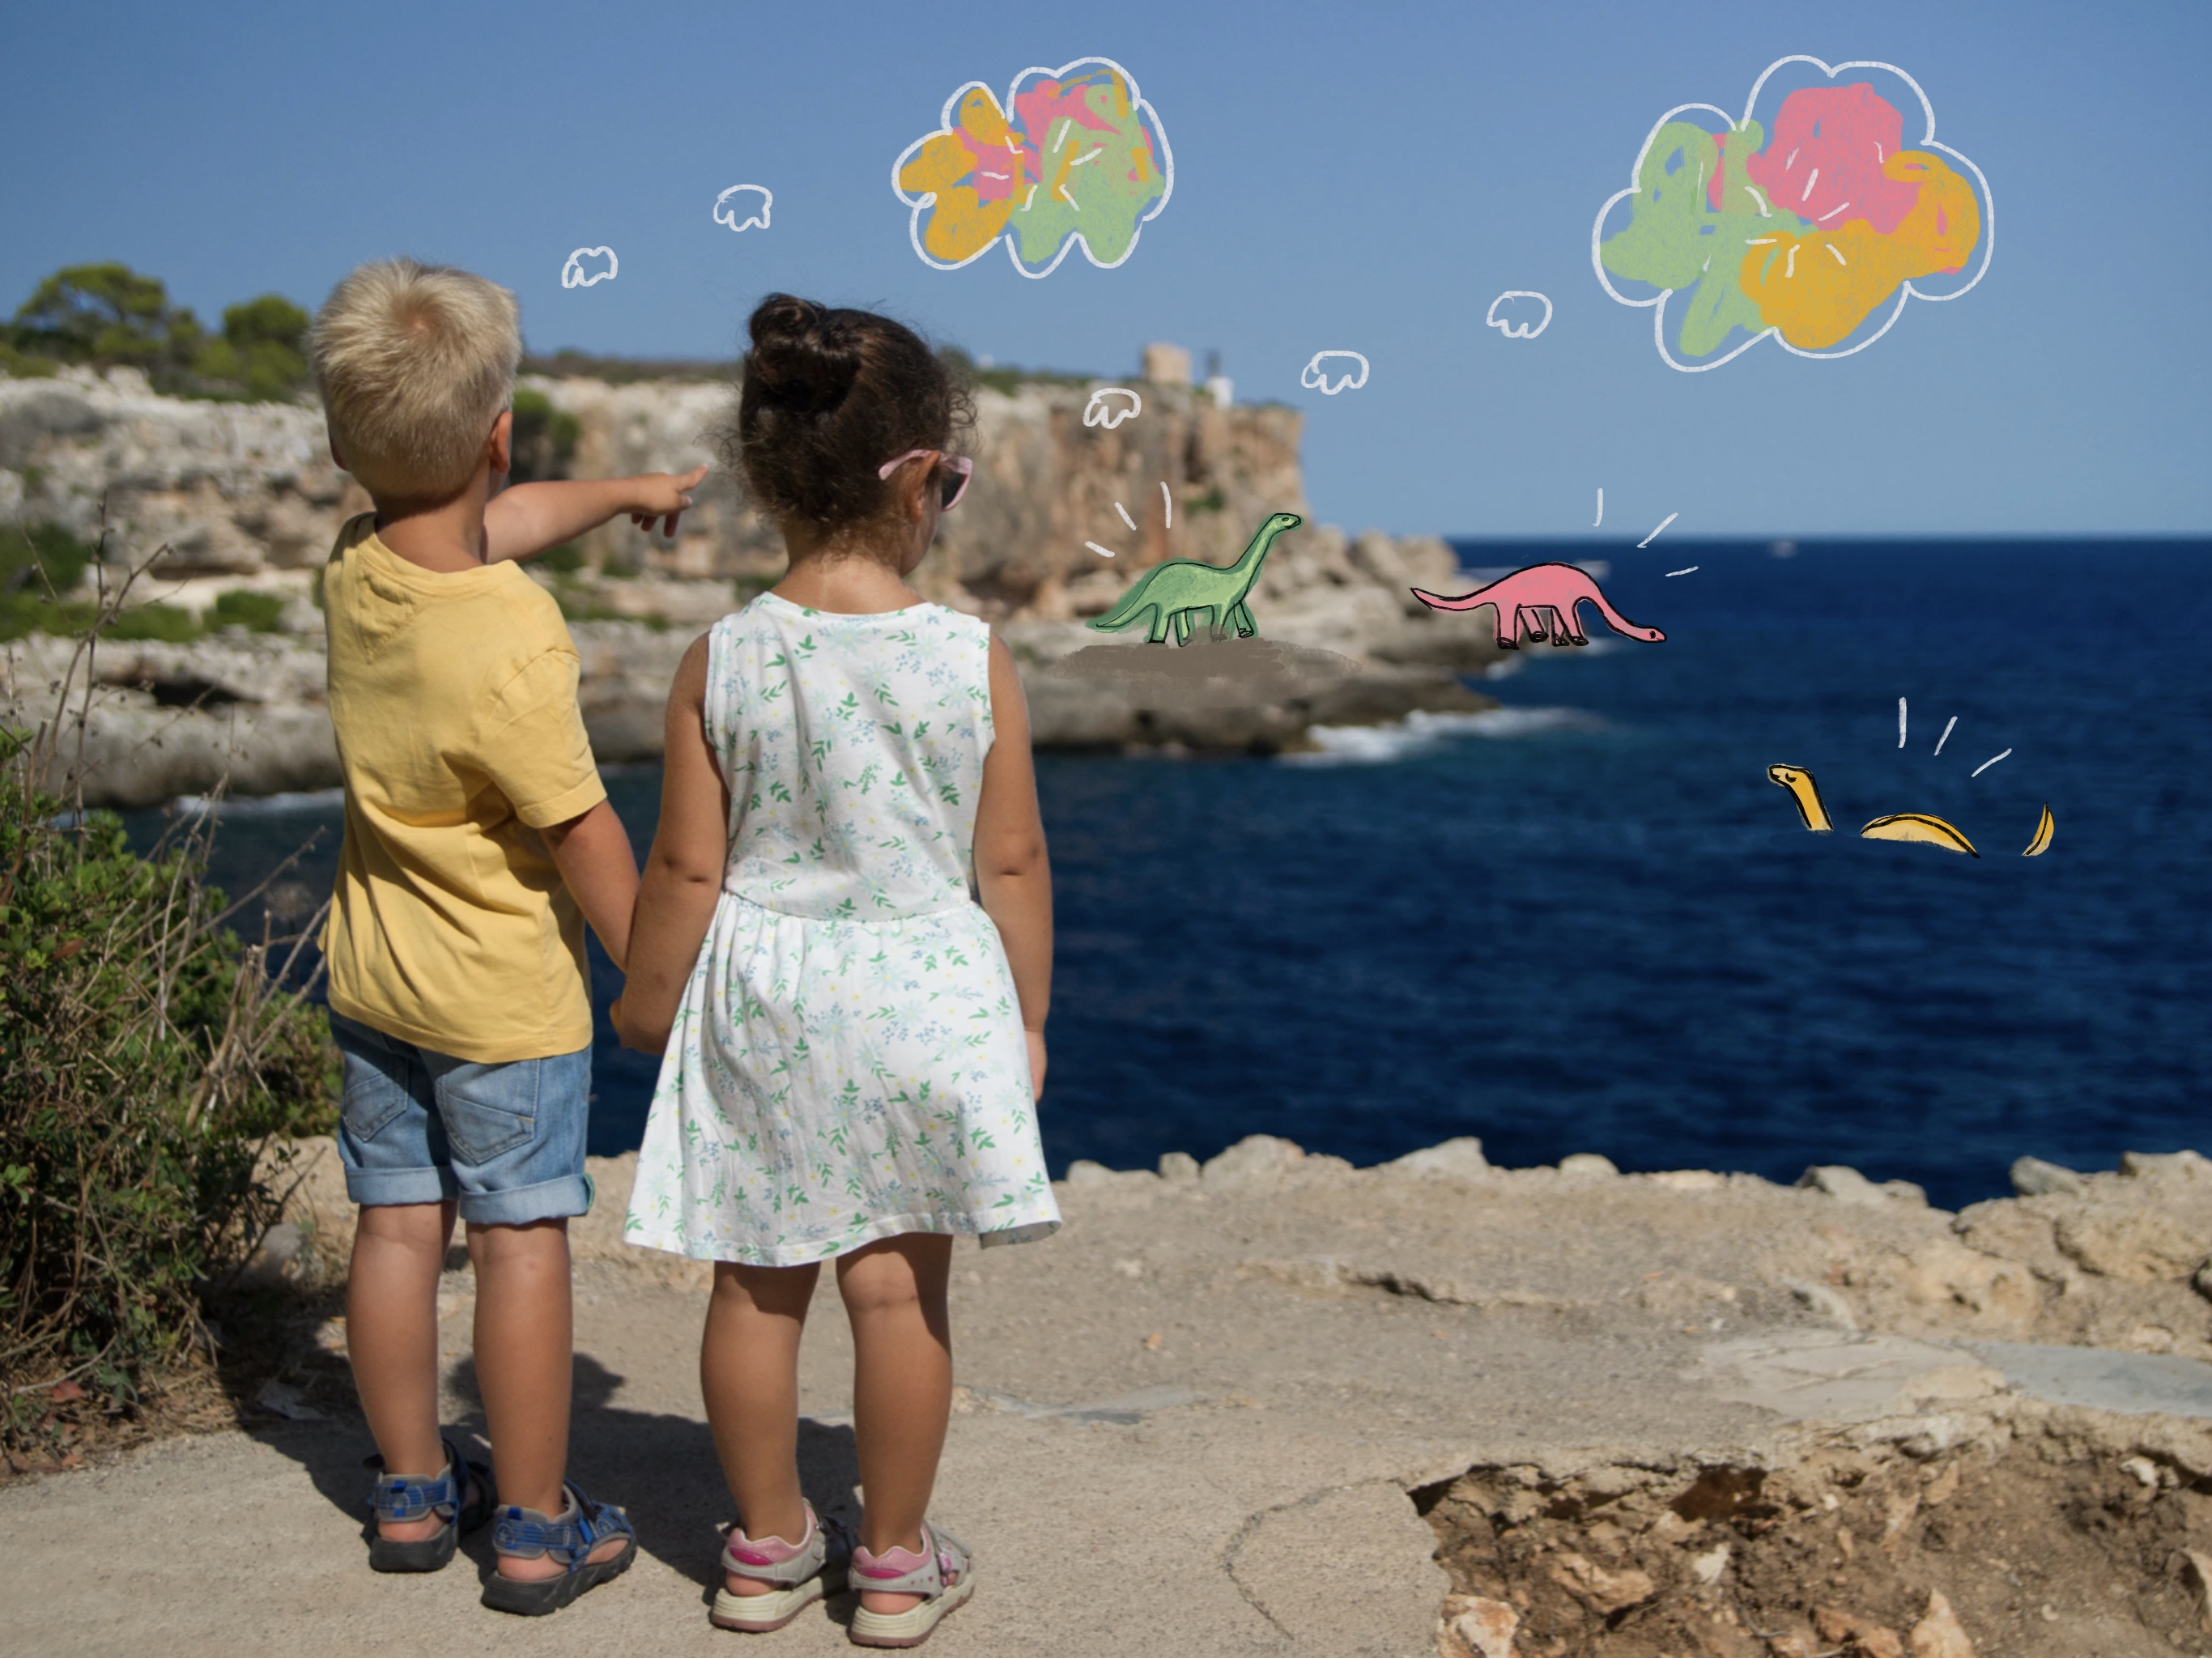 Photo of two children holding hands and looking out at the ocean, with digital doodles of three long-neck dinosaurs added into the landscape